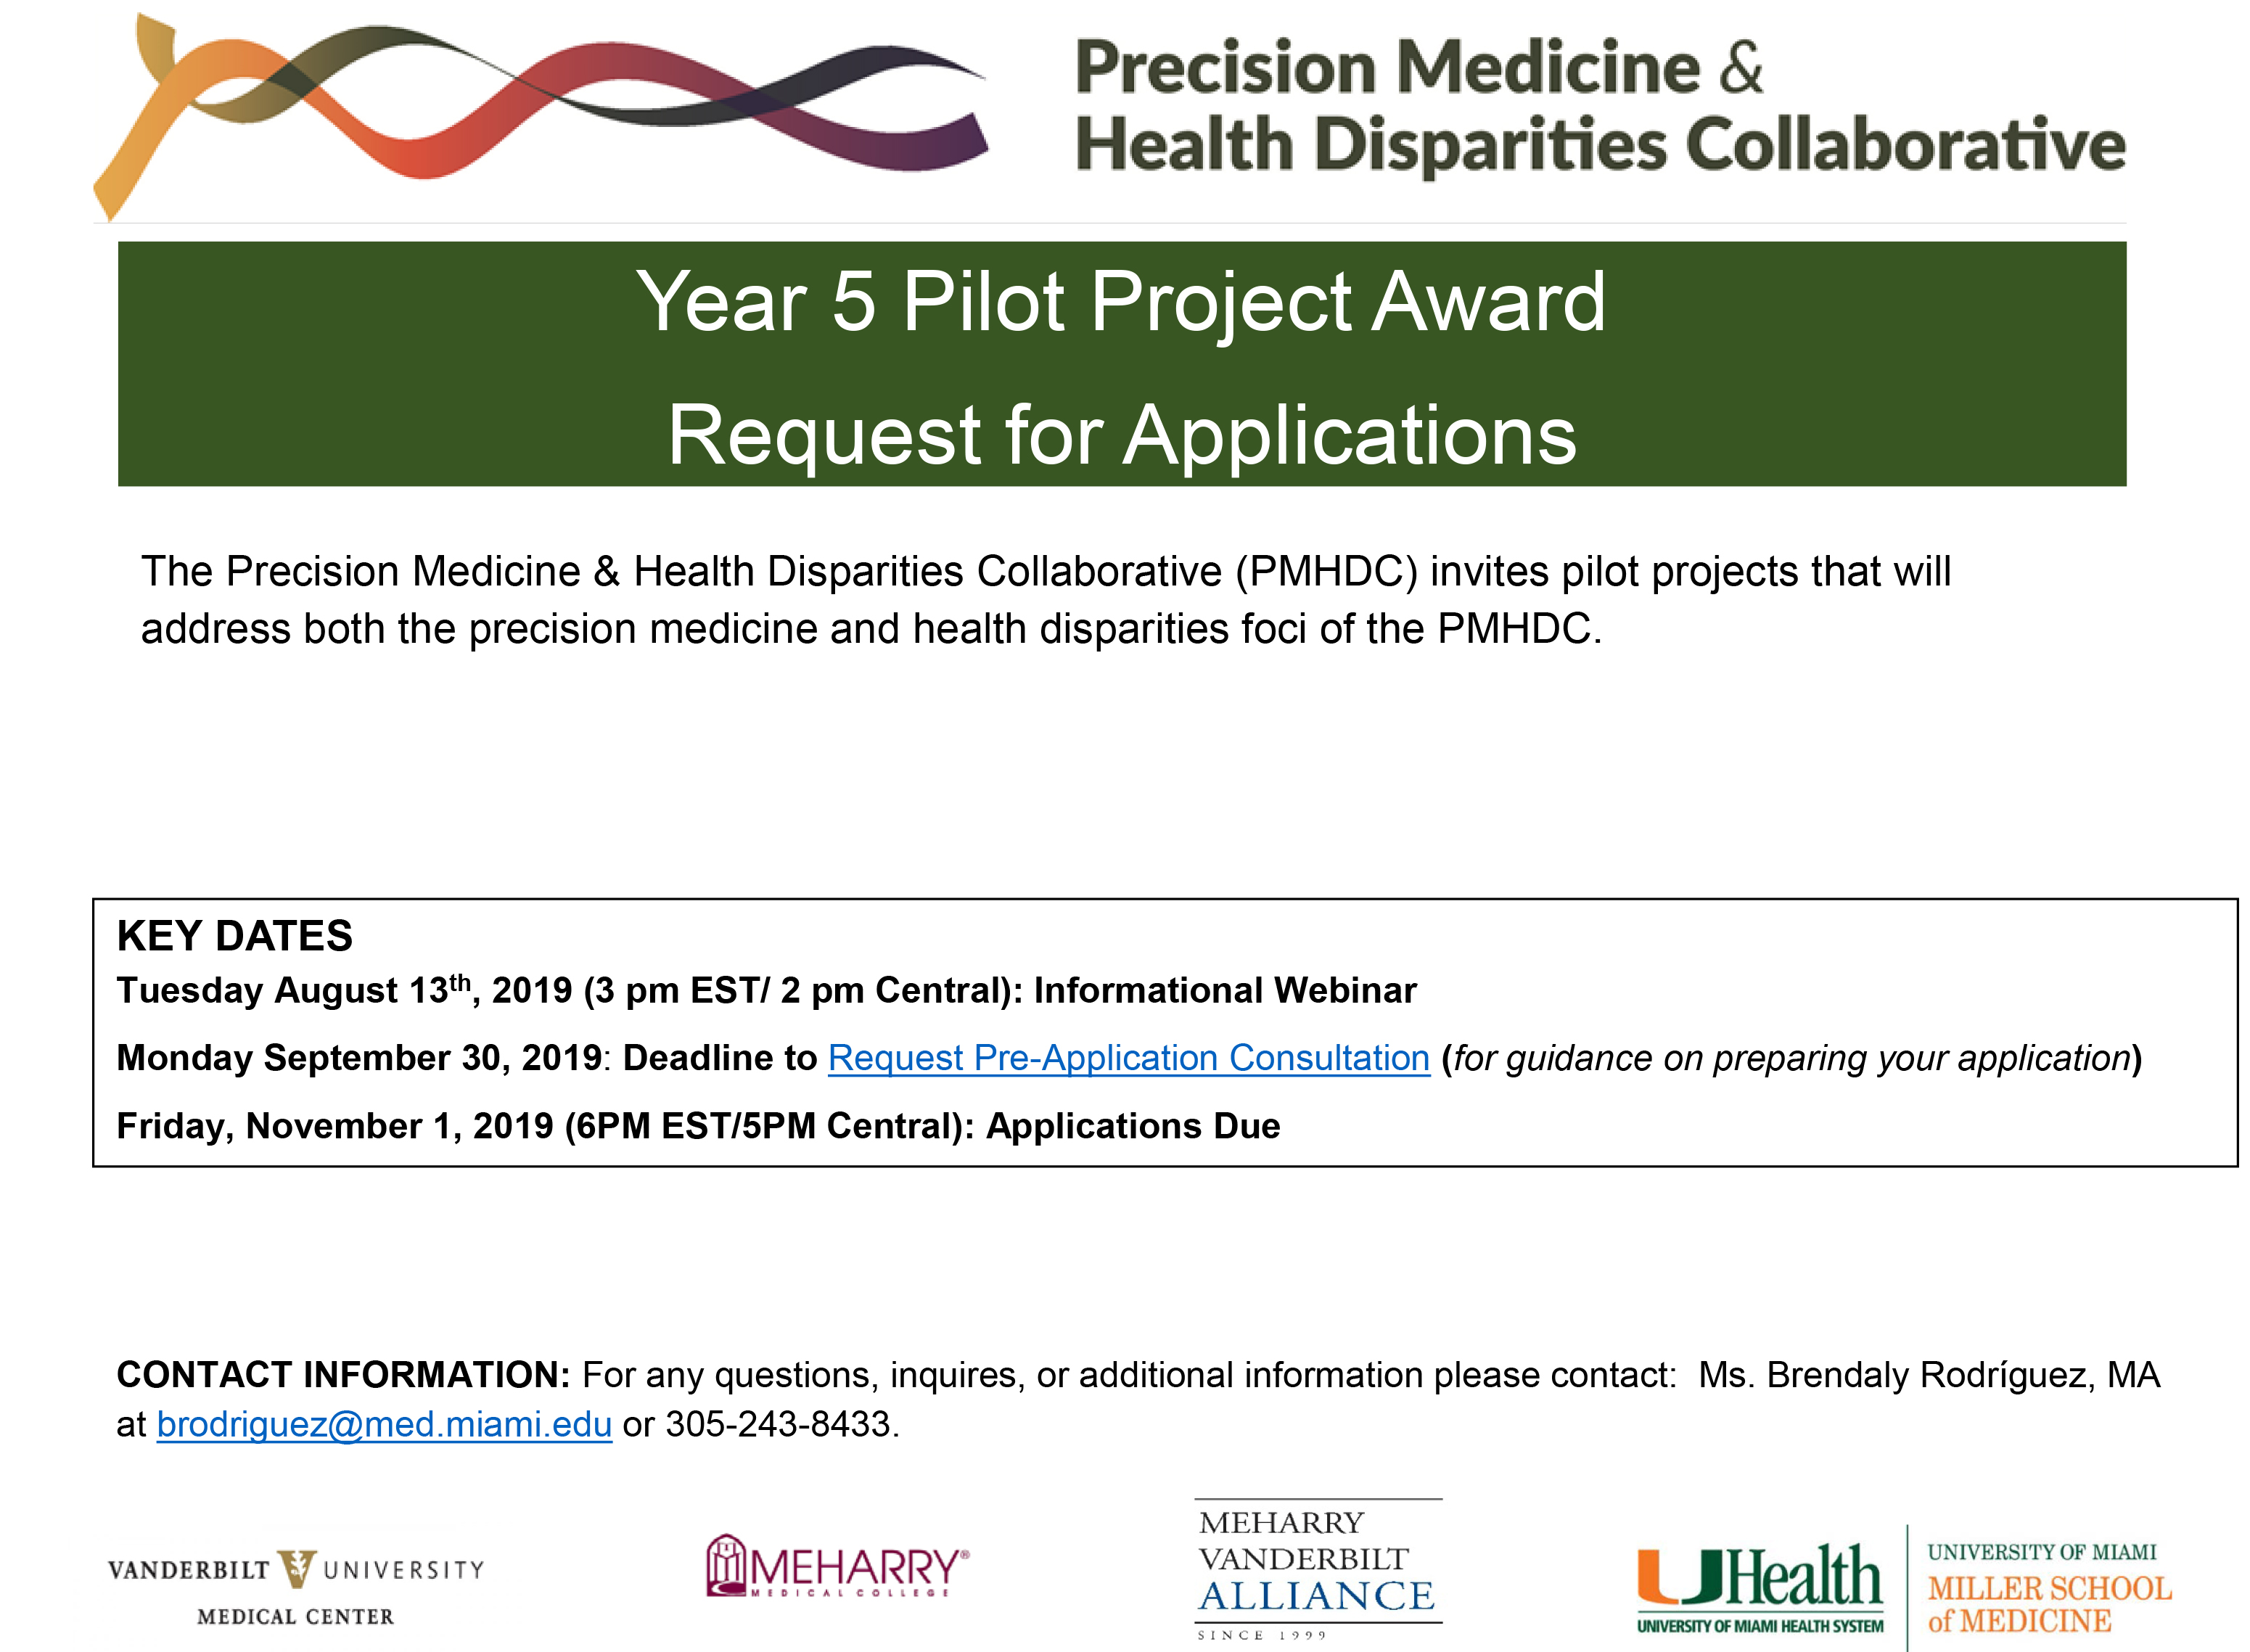 PMHDC Year 5 Pilot Project Award Request for Applications